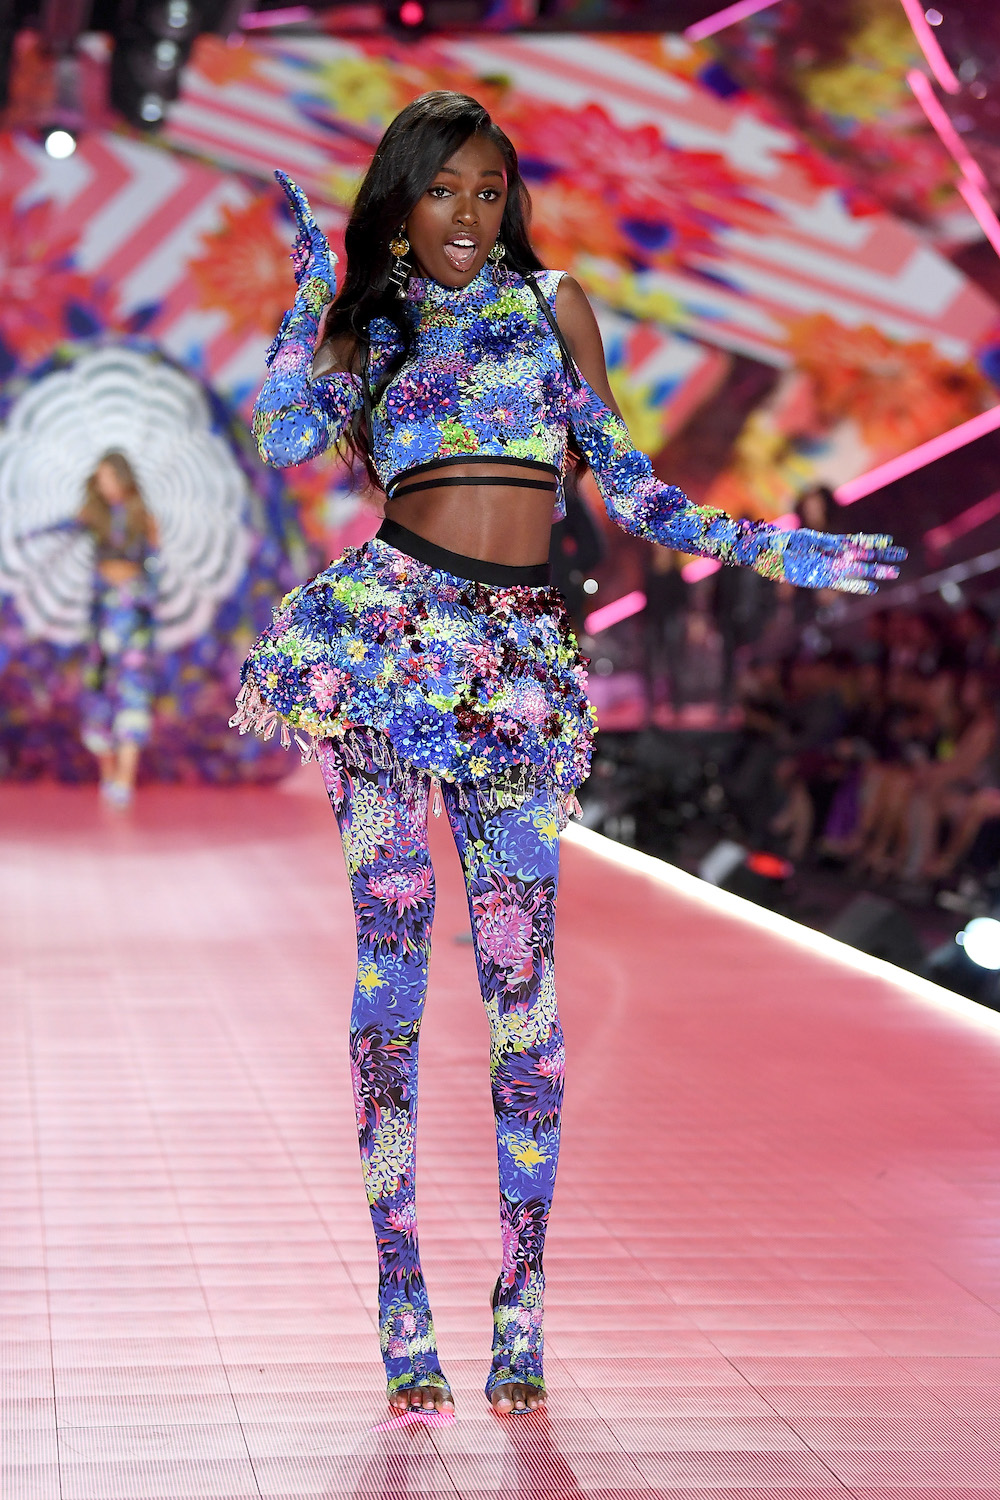 Leomie Anderson walks the runway during the 2018 Victoria's Secret Fashion Show at Pier 94 on November 8, 2018 in New York City.